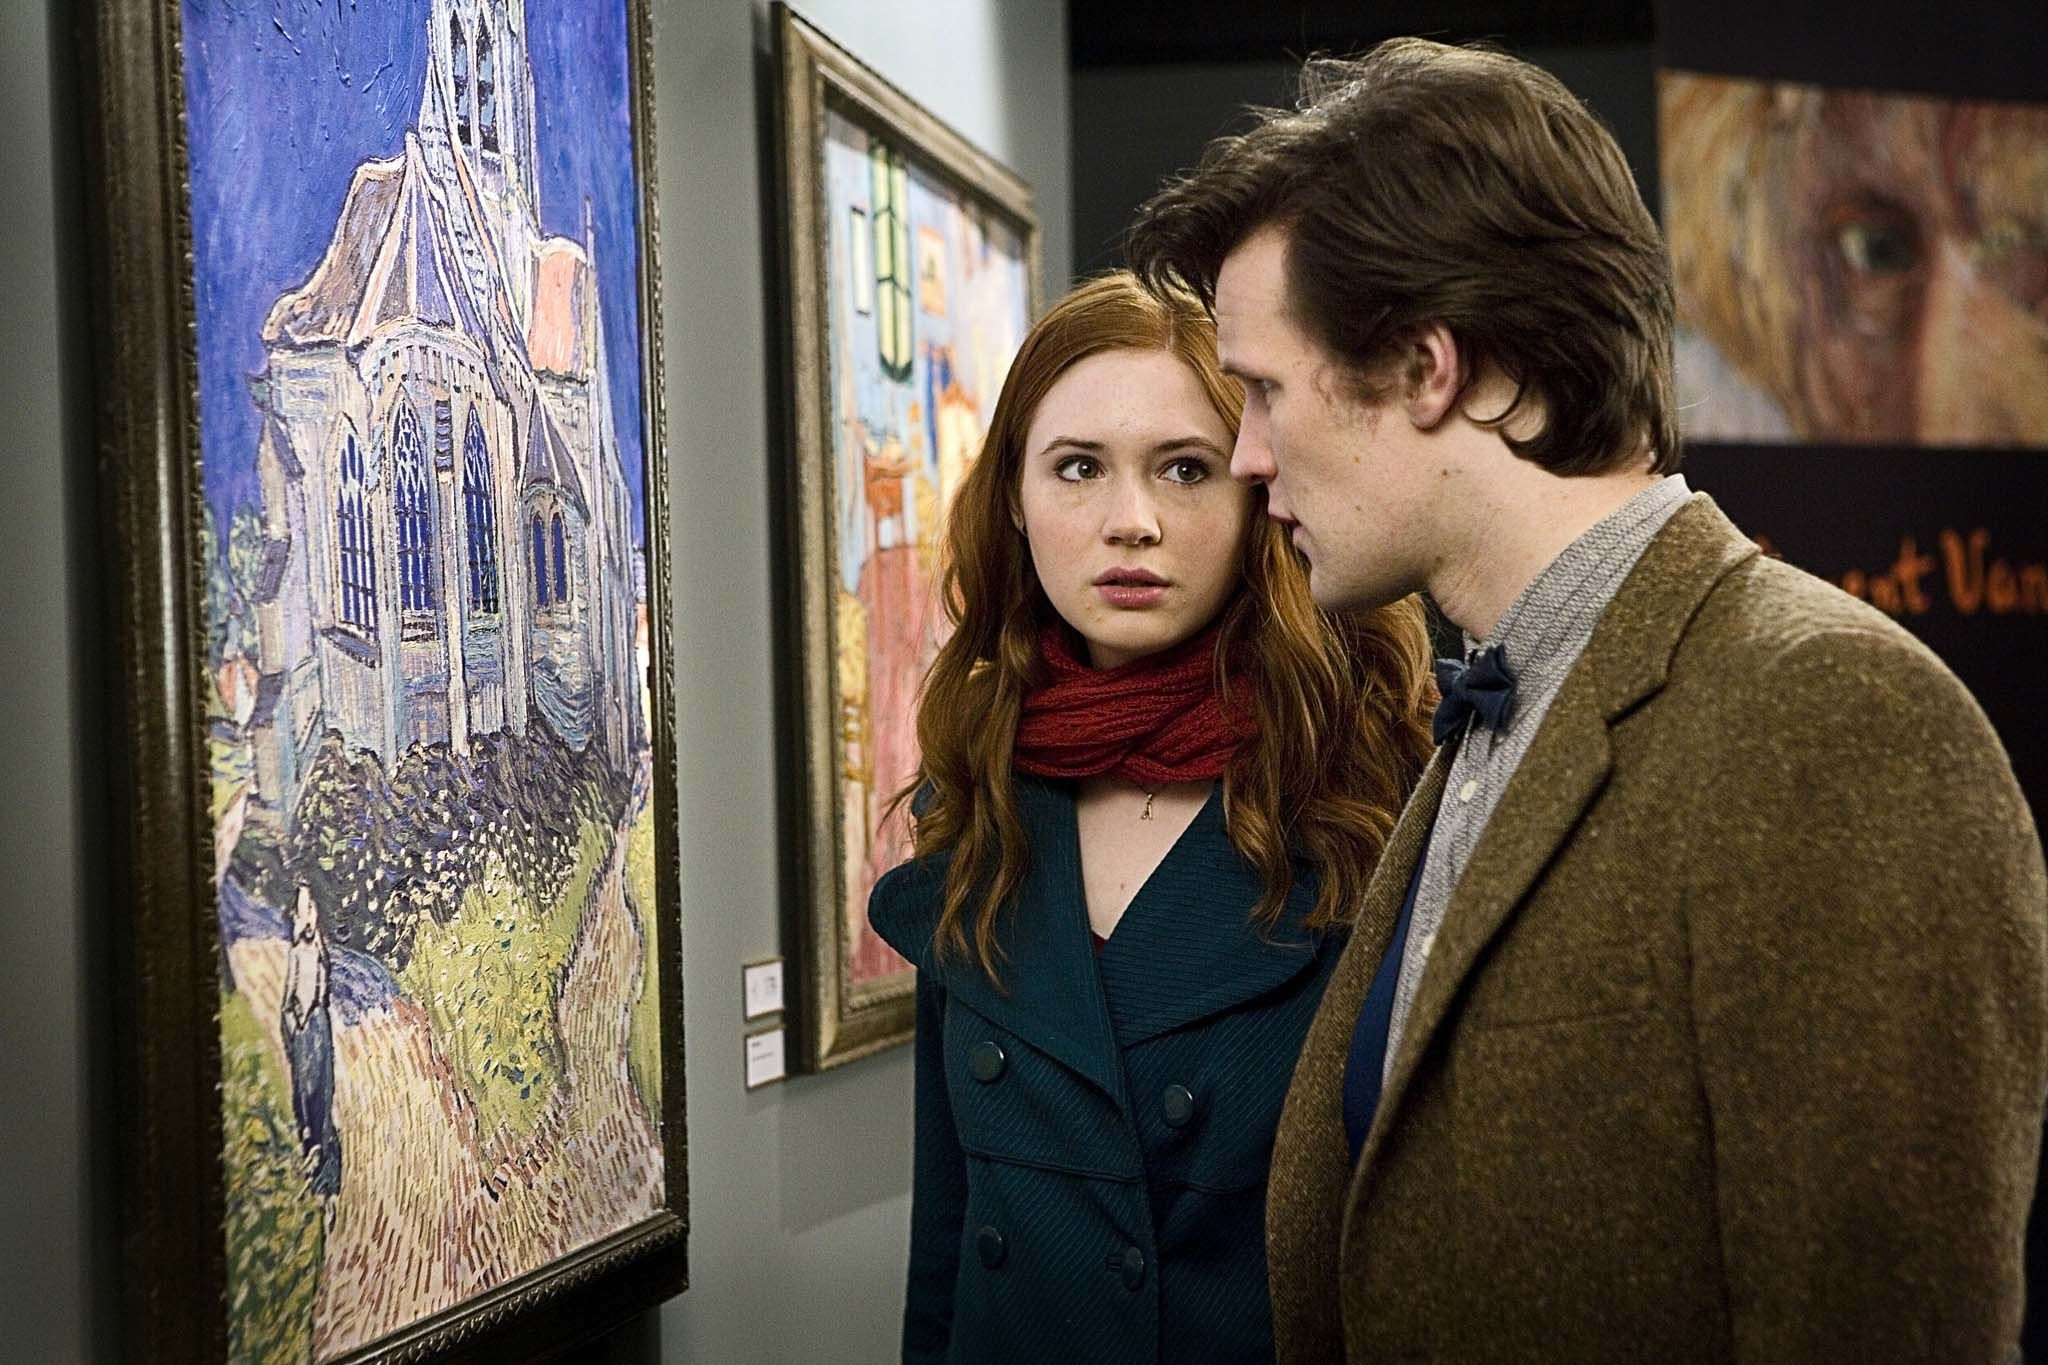 Vincent and the Doctor Trended on Twitter after Can You Hear Me? Aired